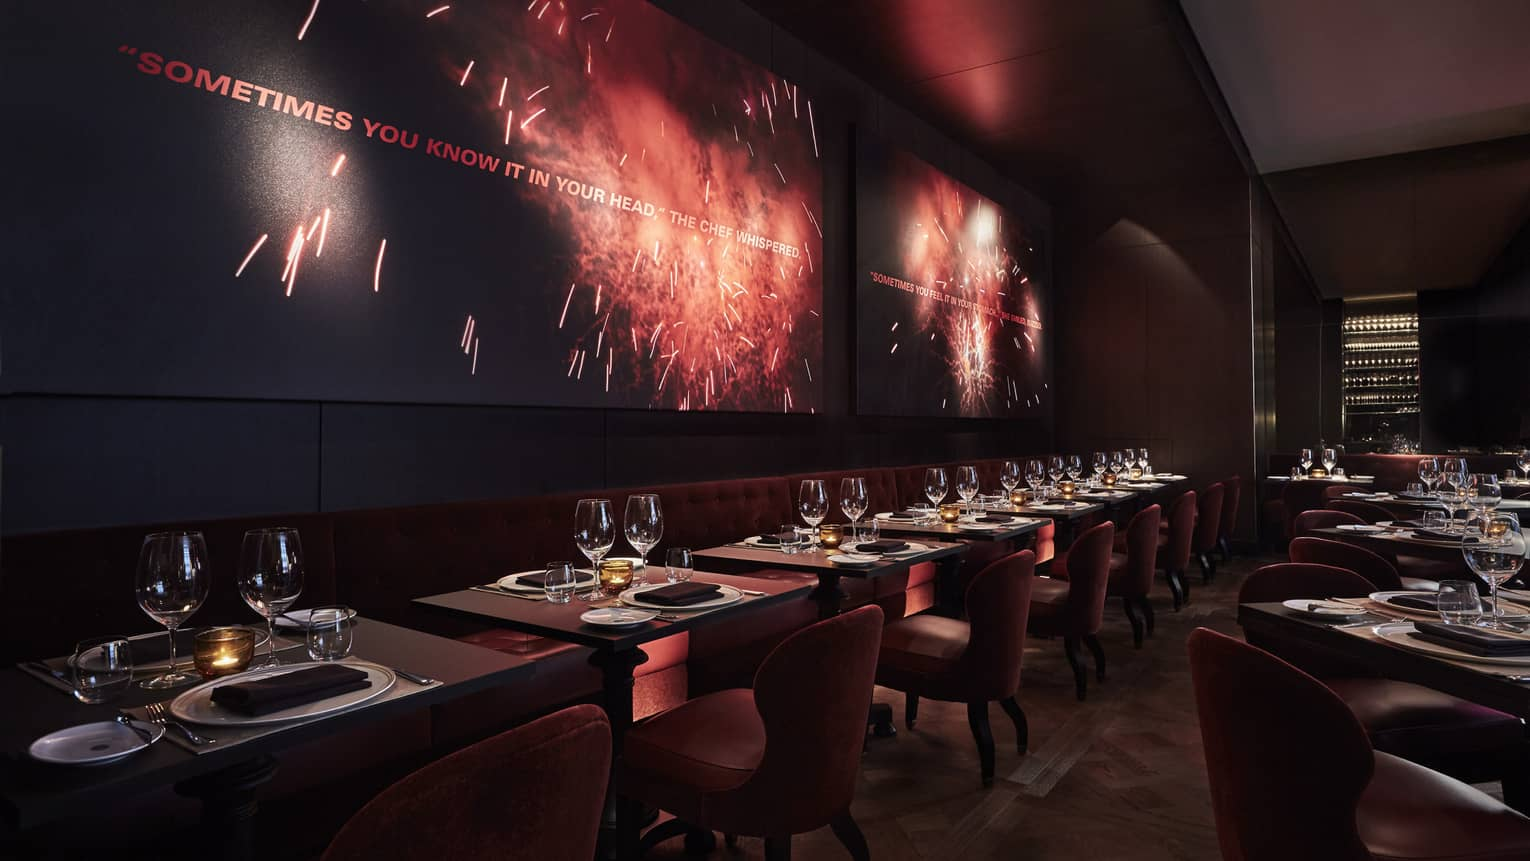 Rows of dining tables lined with red velvet chairs under paintings of fireworks in CUT dining room